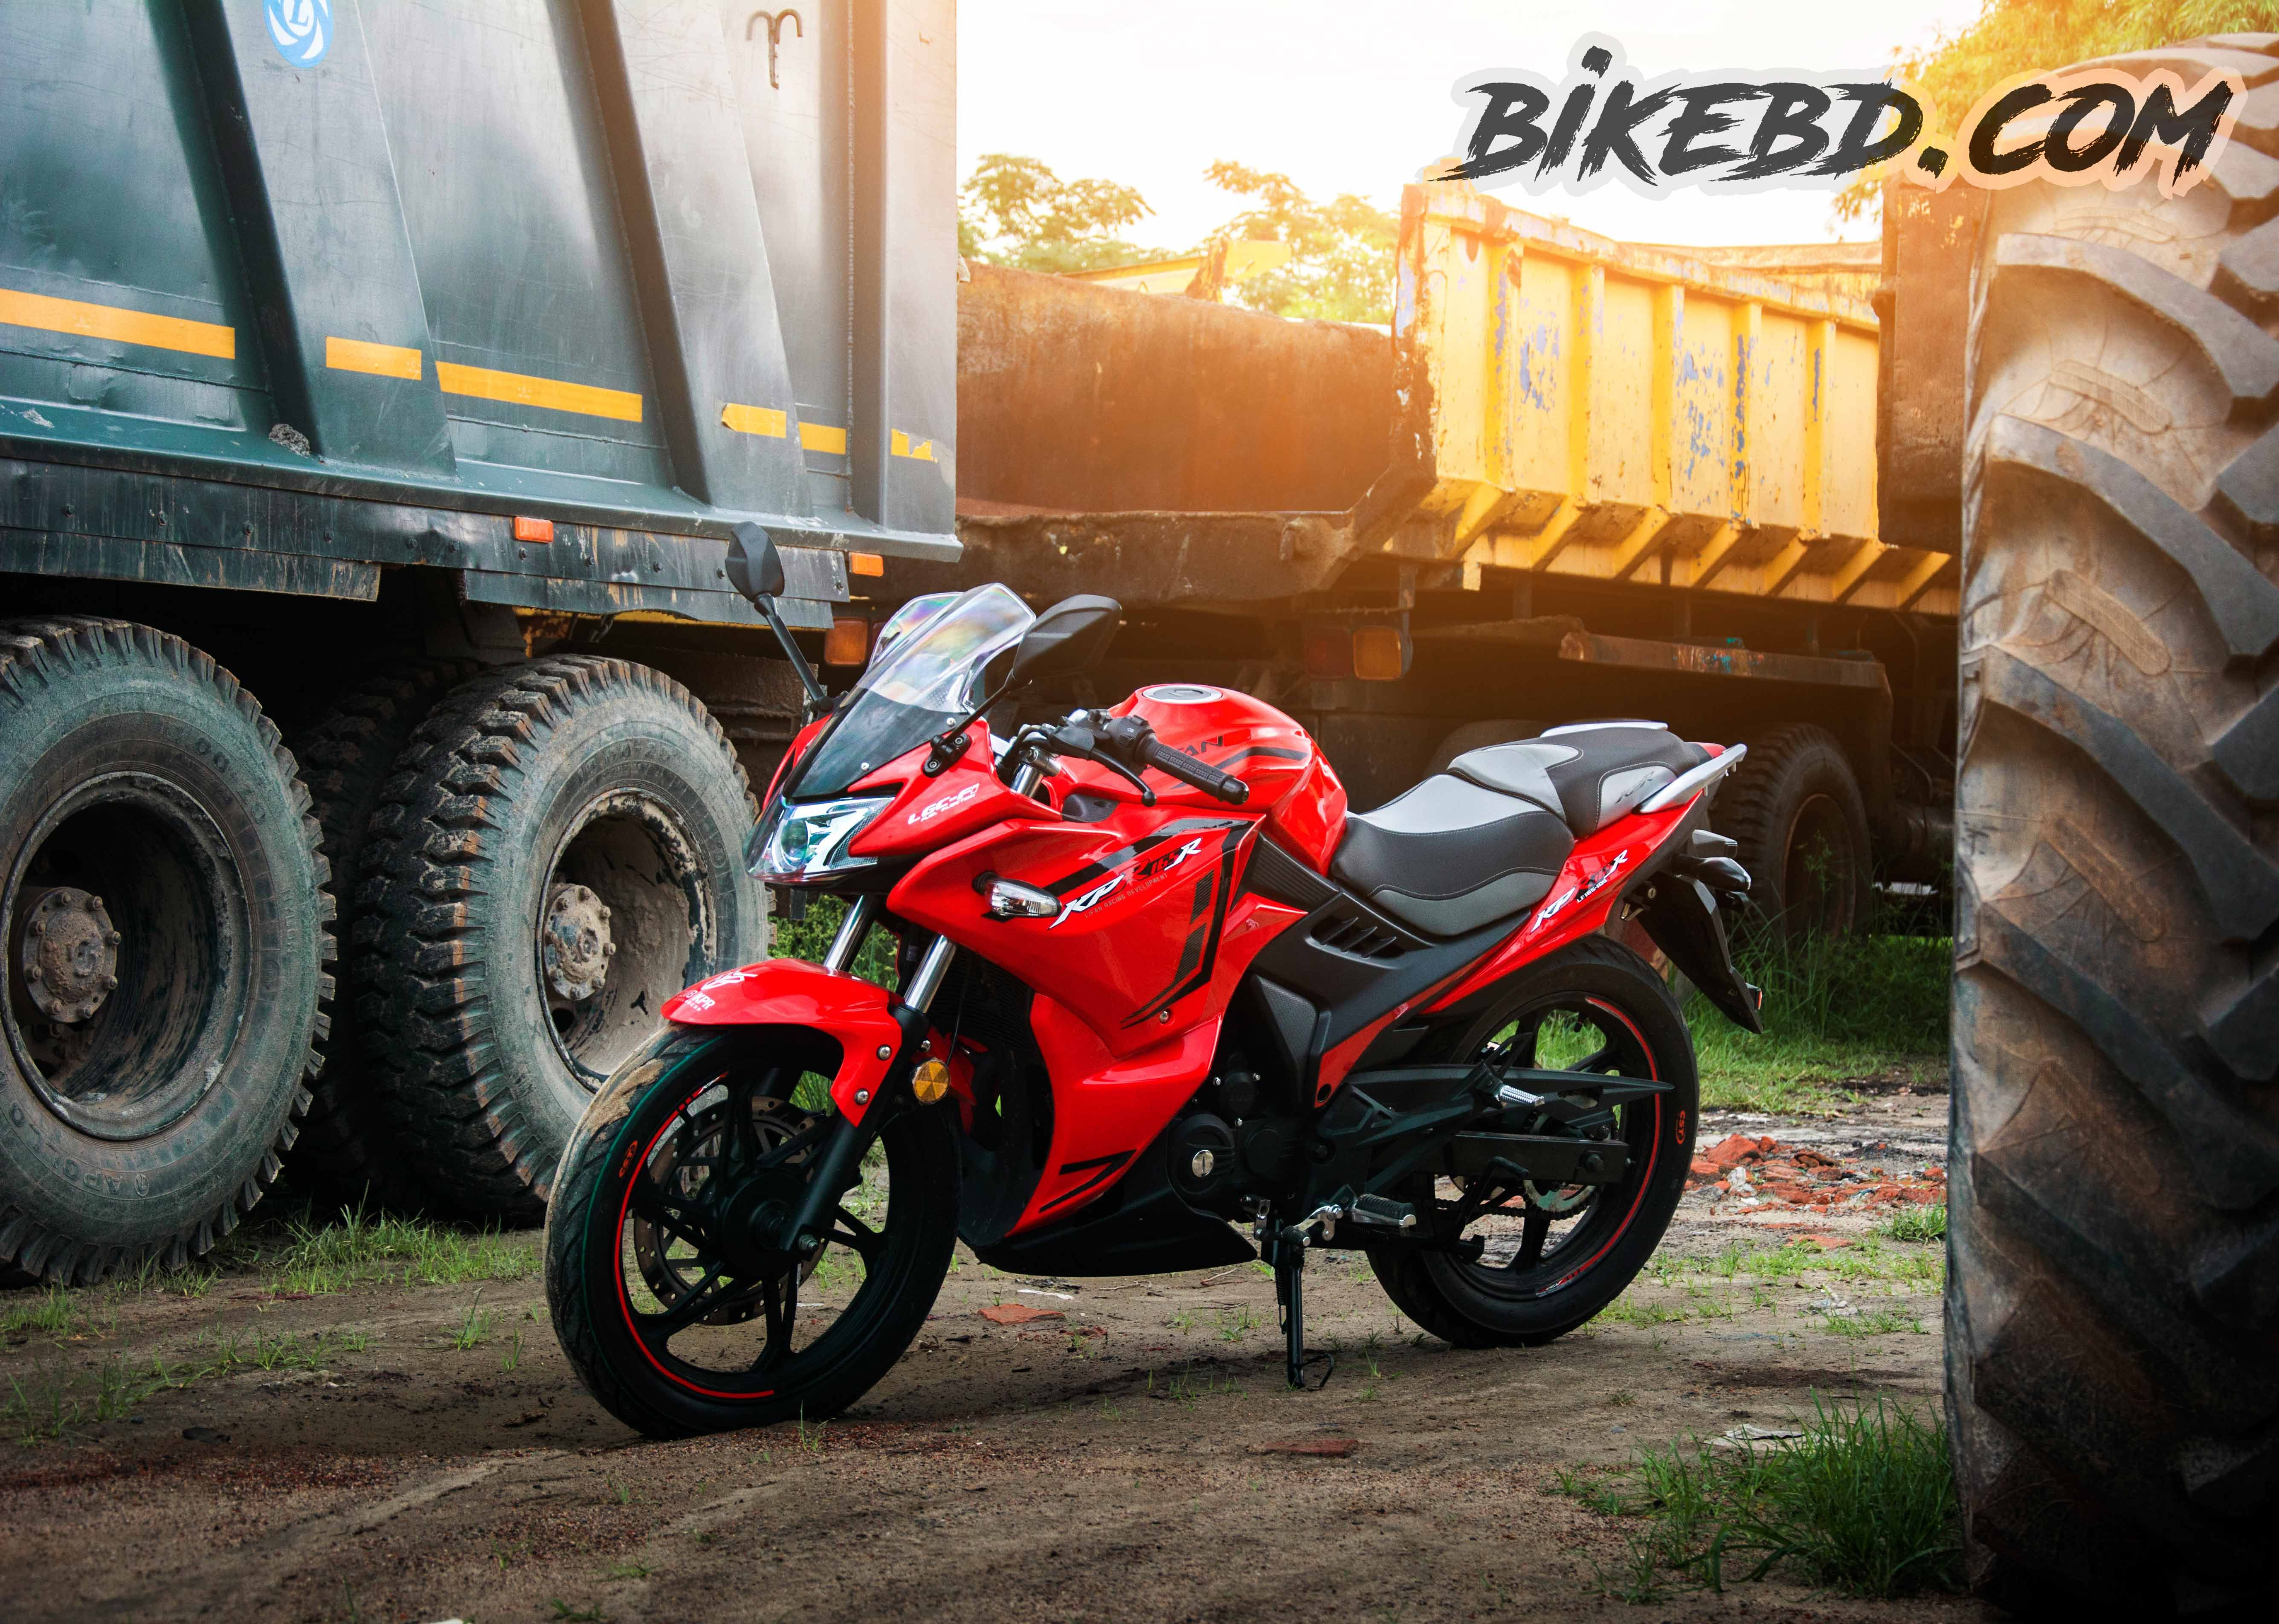 Lifan KPR series is one of the most popular motorcycle in